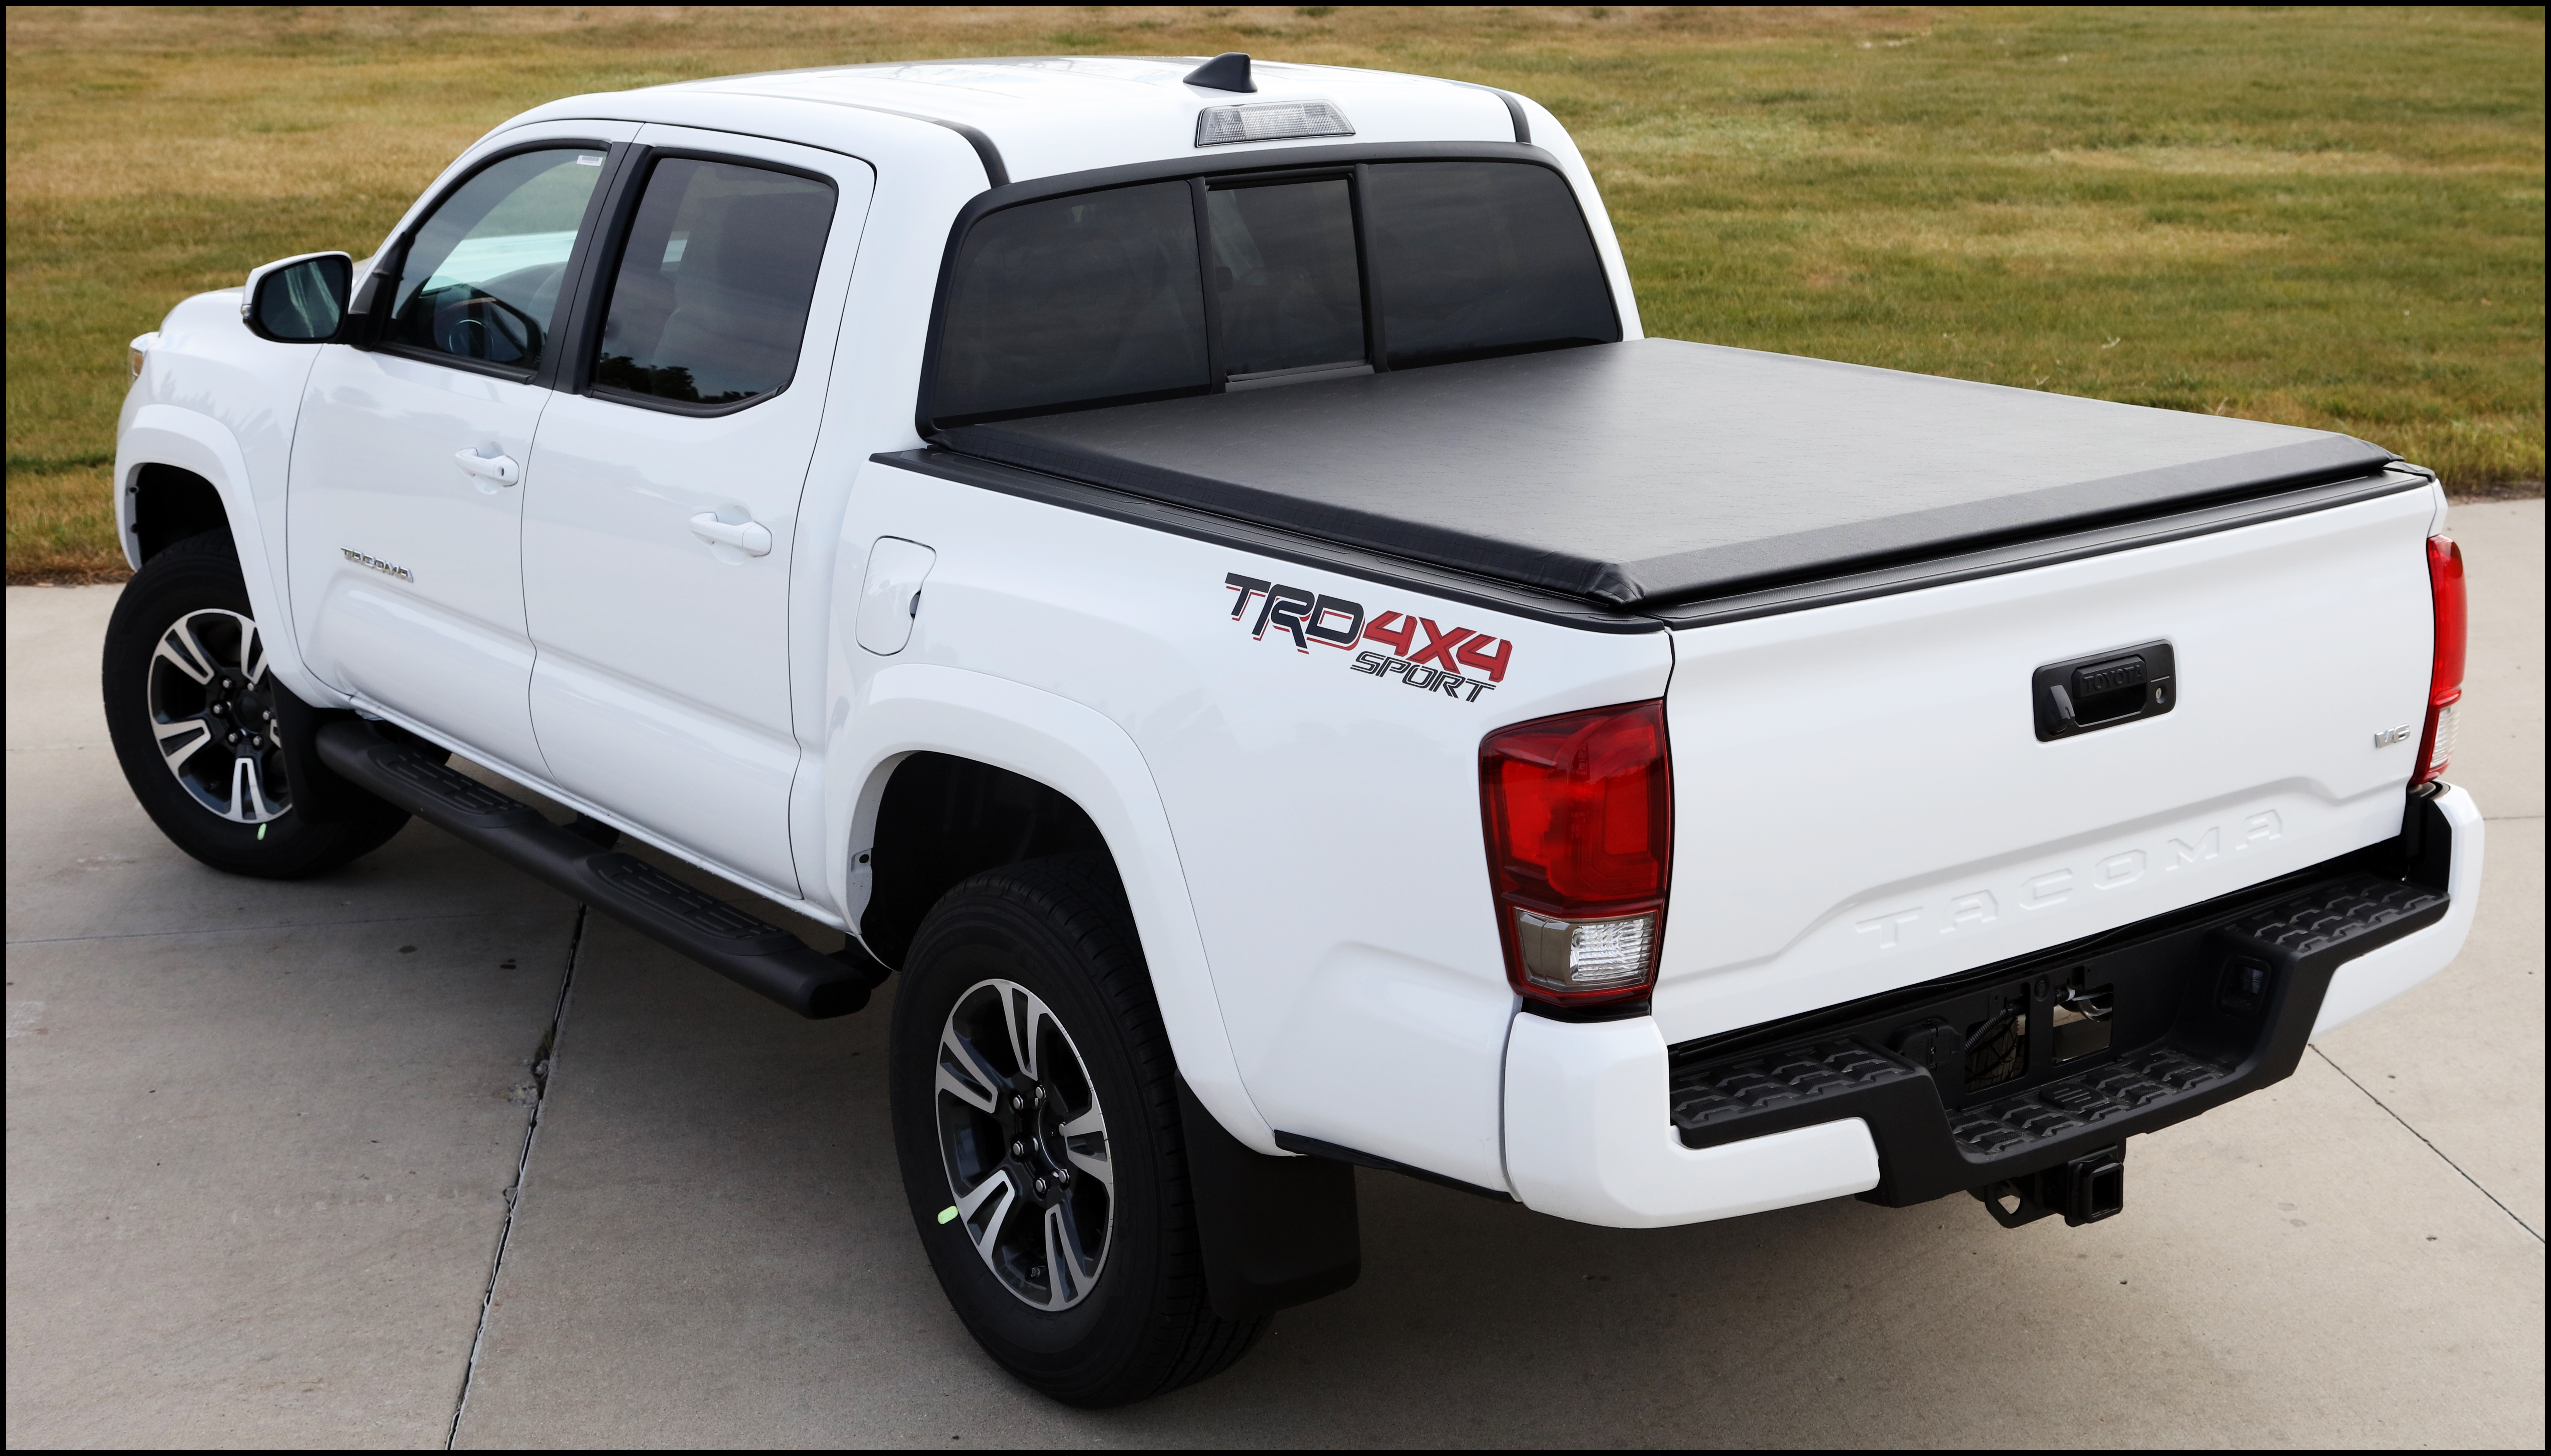 Have you considered ordering an aftermarket tonneau cover I d be happy to hook you up